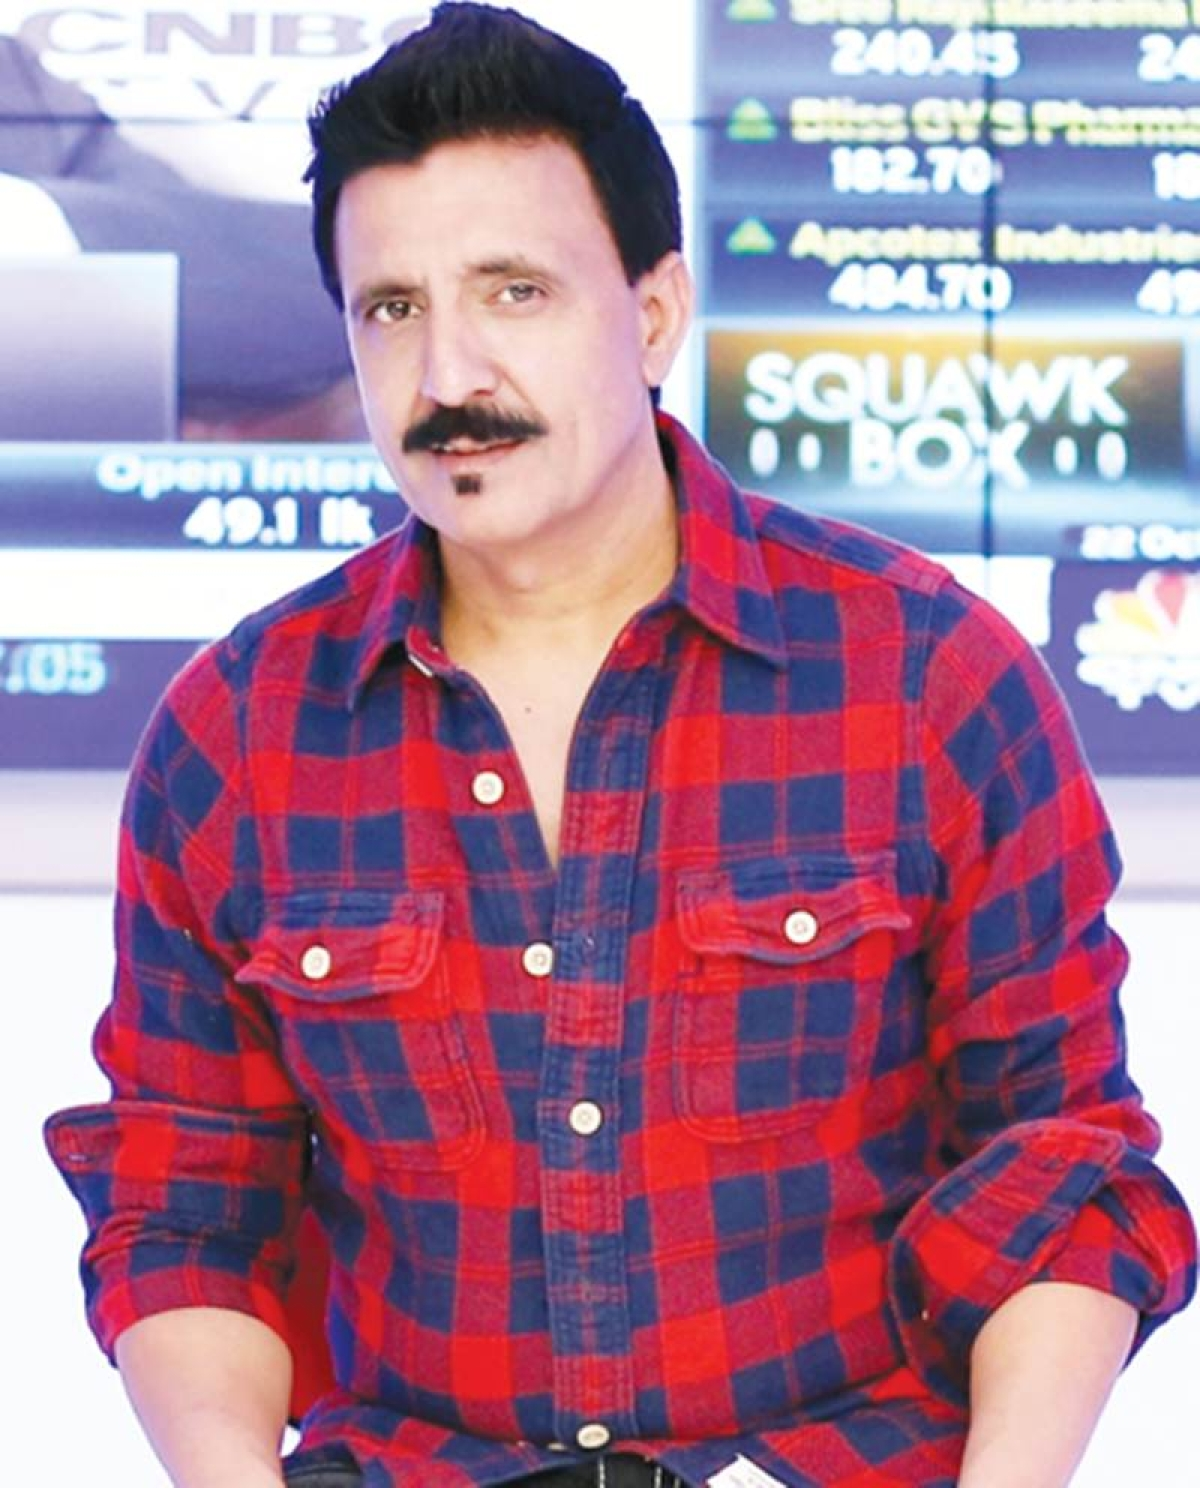 '2017 was the beginning for acquisitions', says Robin Raina